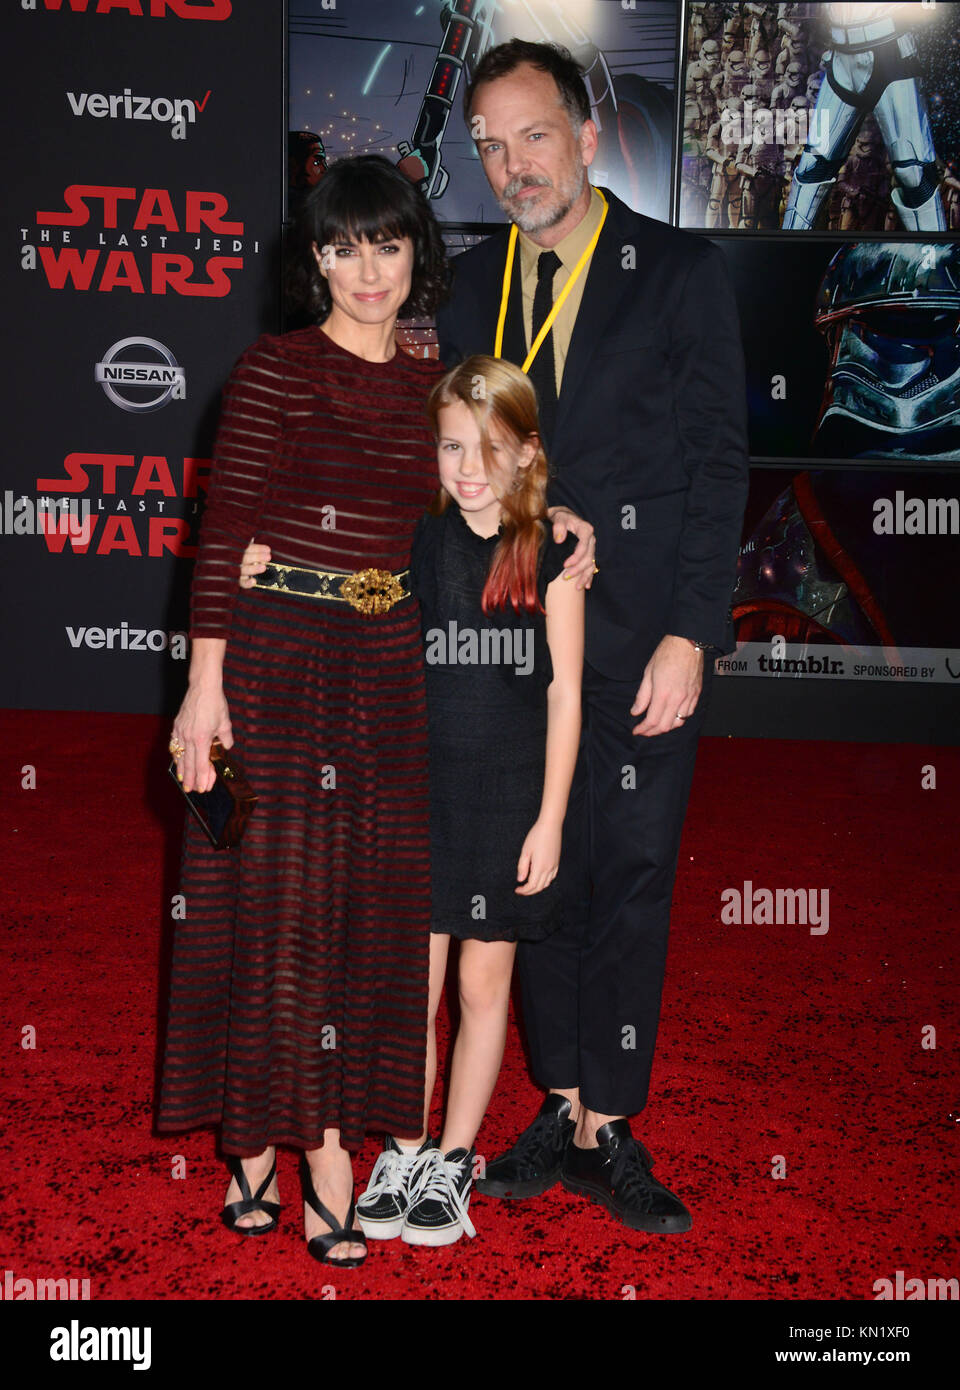 Constance Zimmer Constance Zimmer new pictures